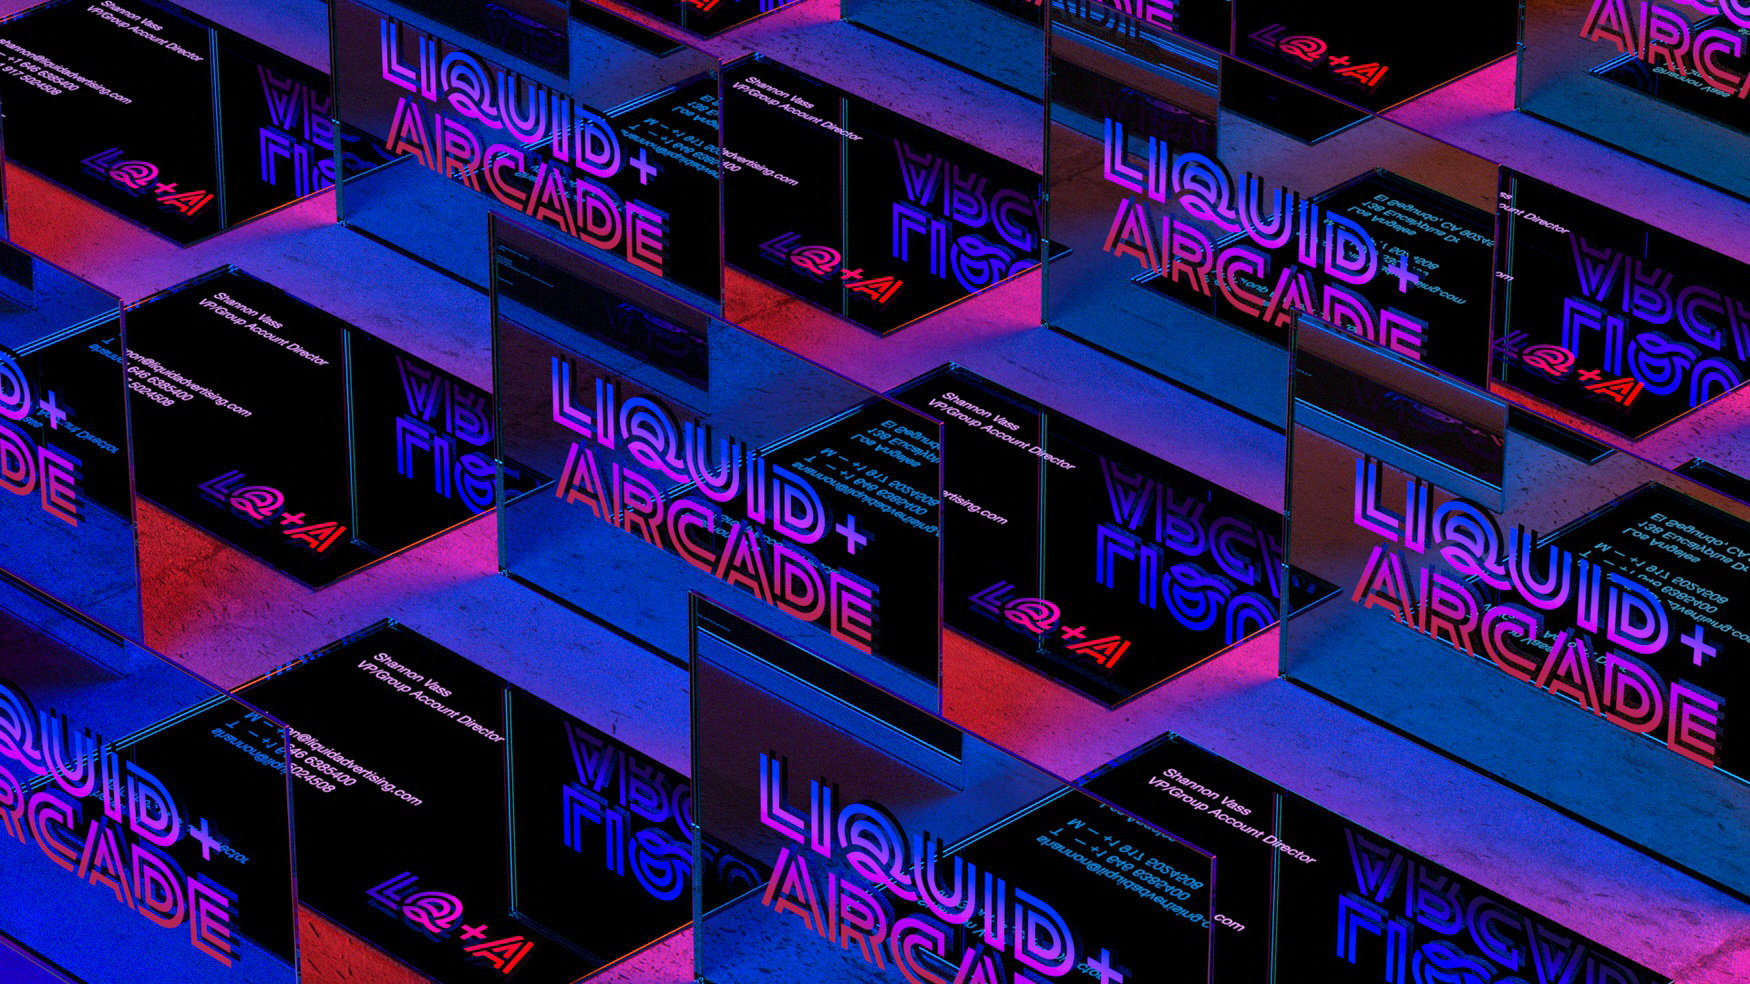 Sunday Afternoon Brings Early Video Gaming Vibe to Rebrand for Liquid+Arcade